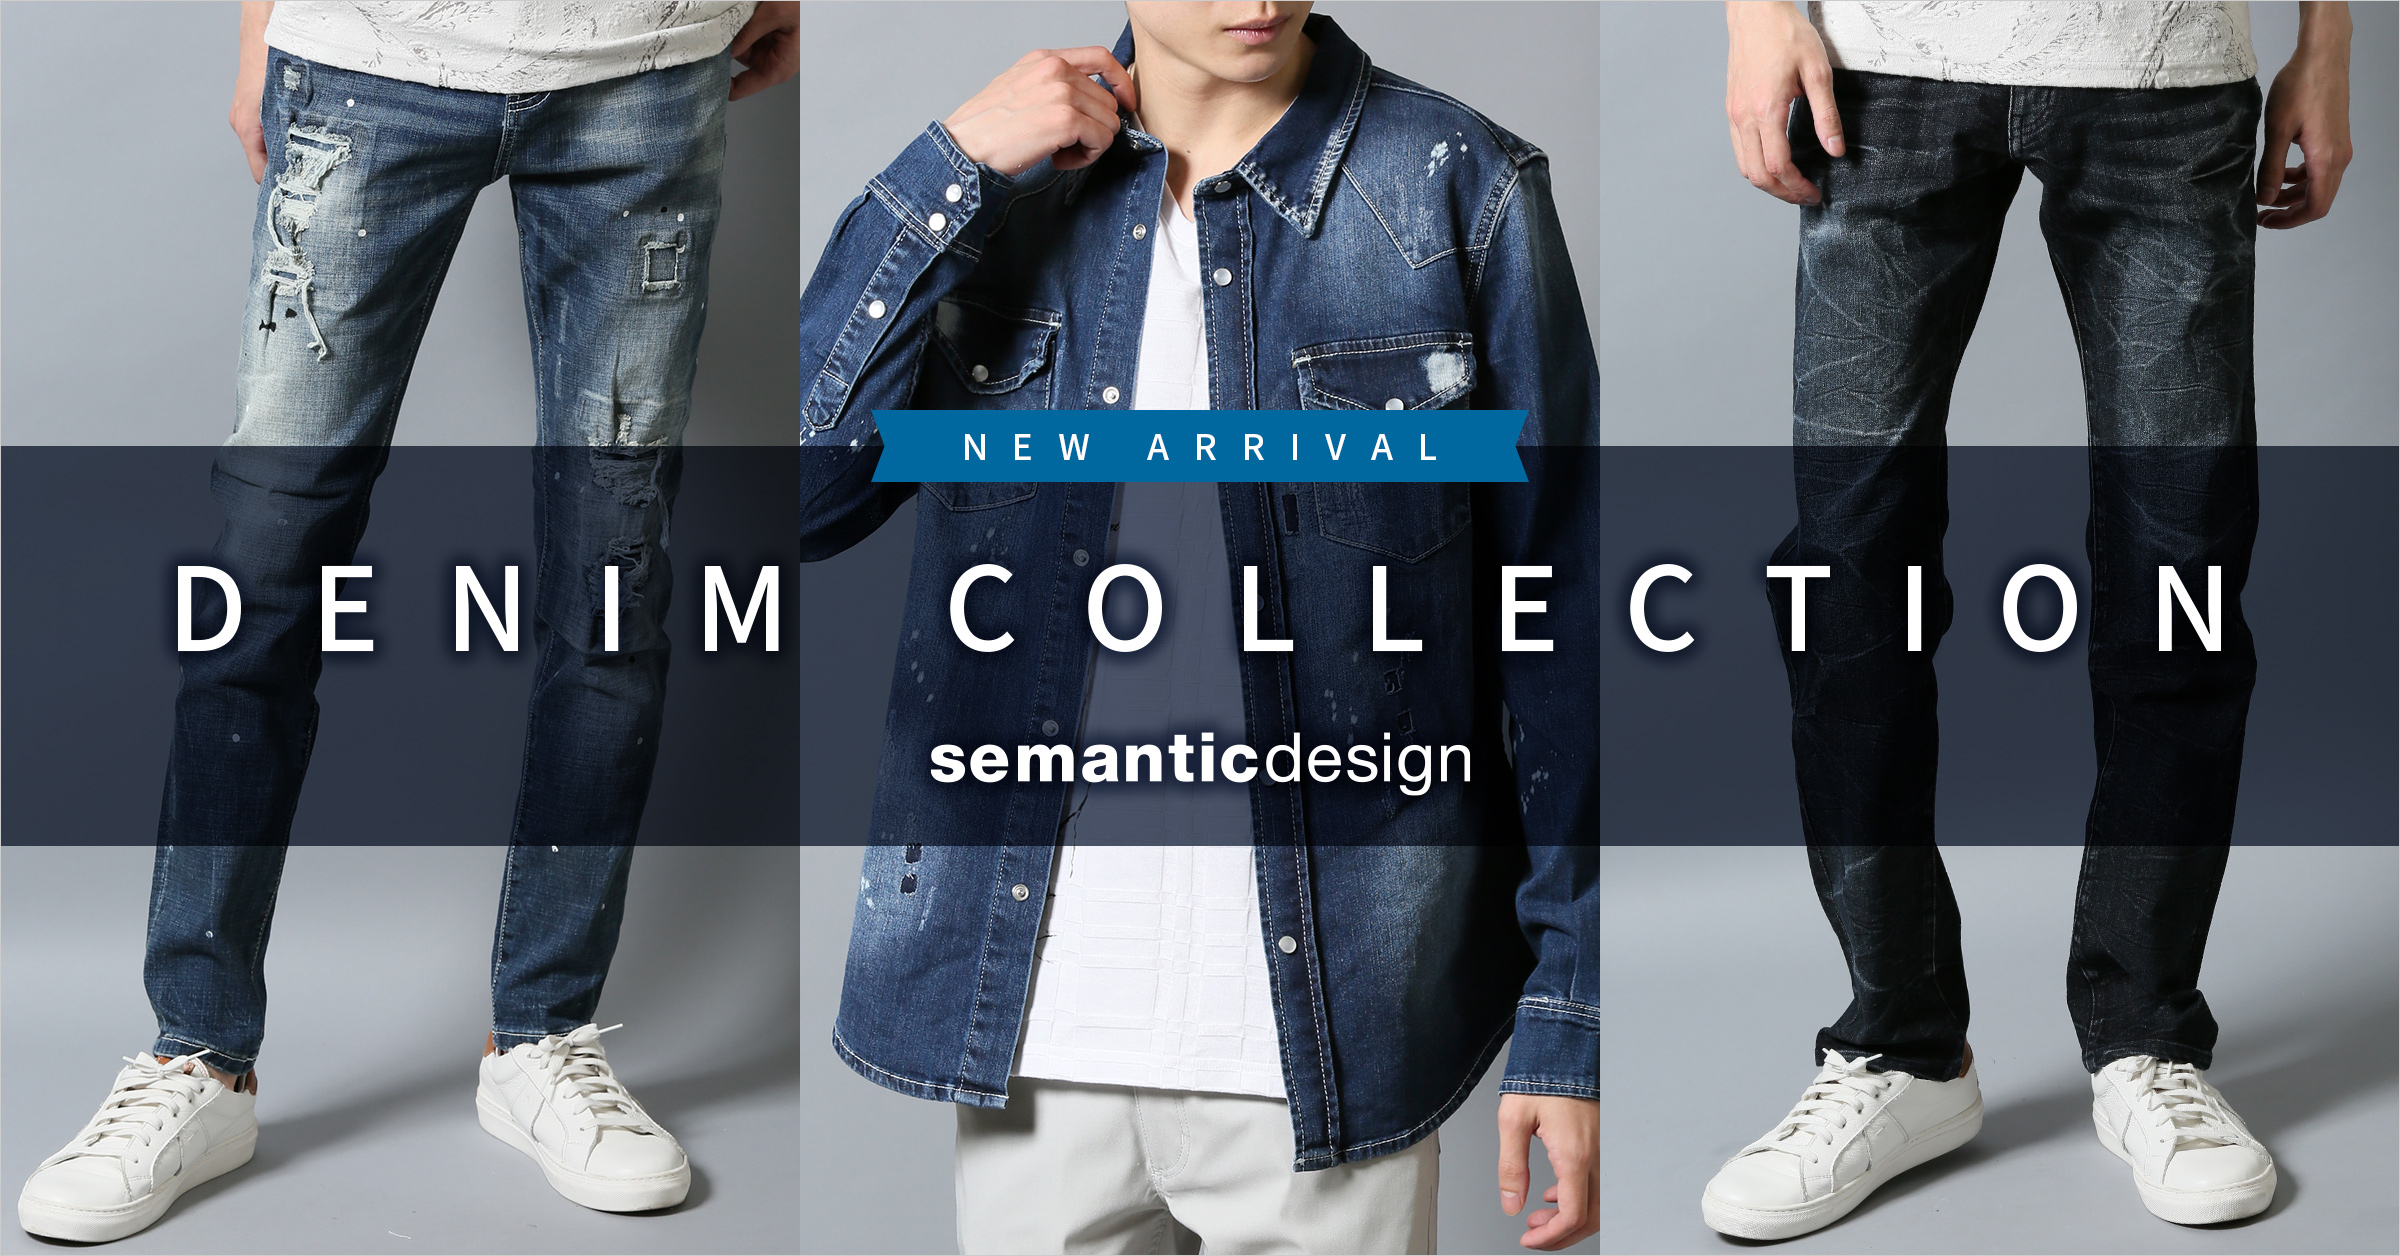 NEW ARRIVAL DENIM COLLECTION